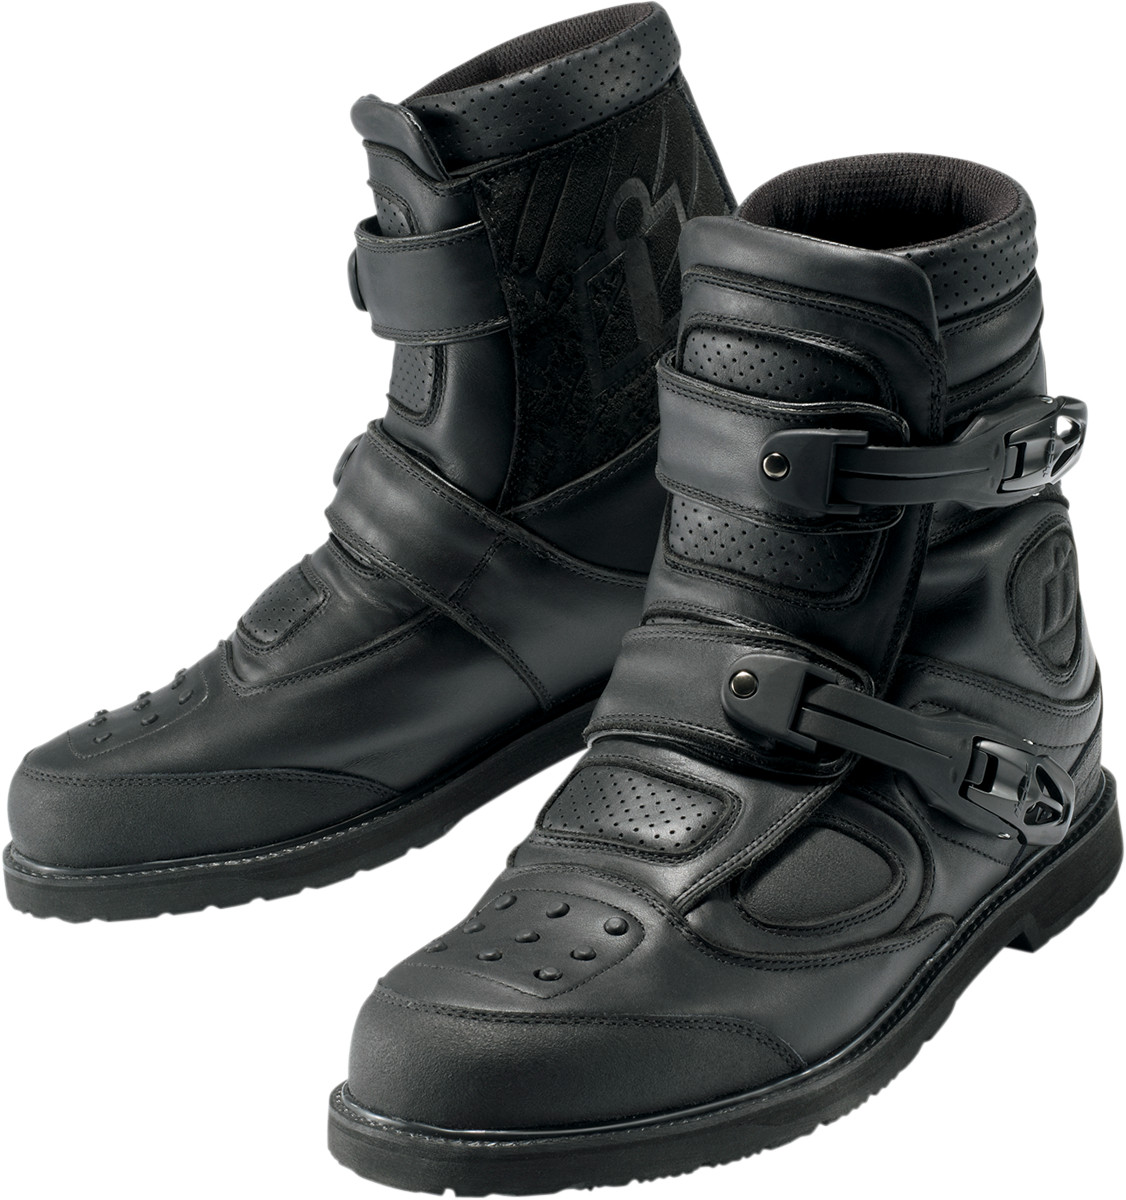 Icon Patrol Waterproof Motorcycle Riding Boots Black